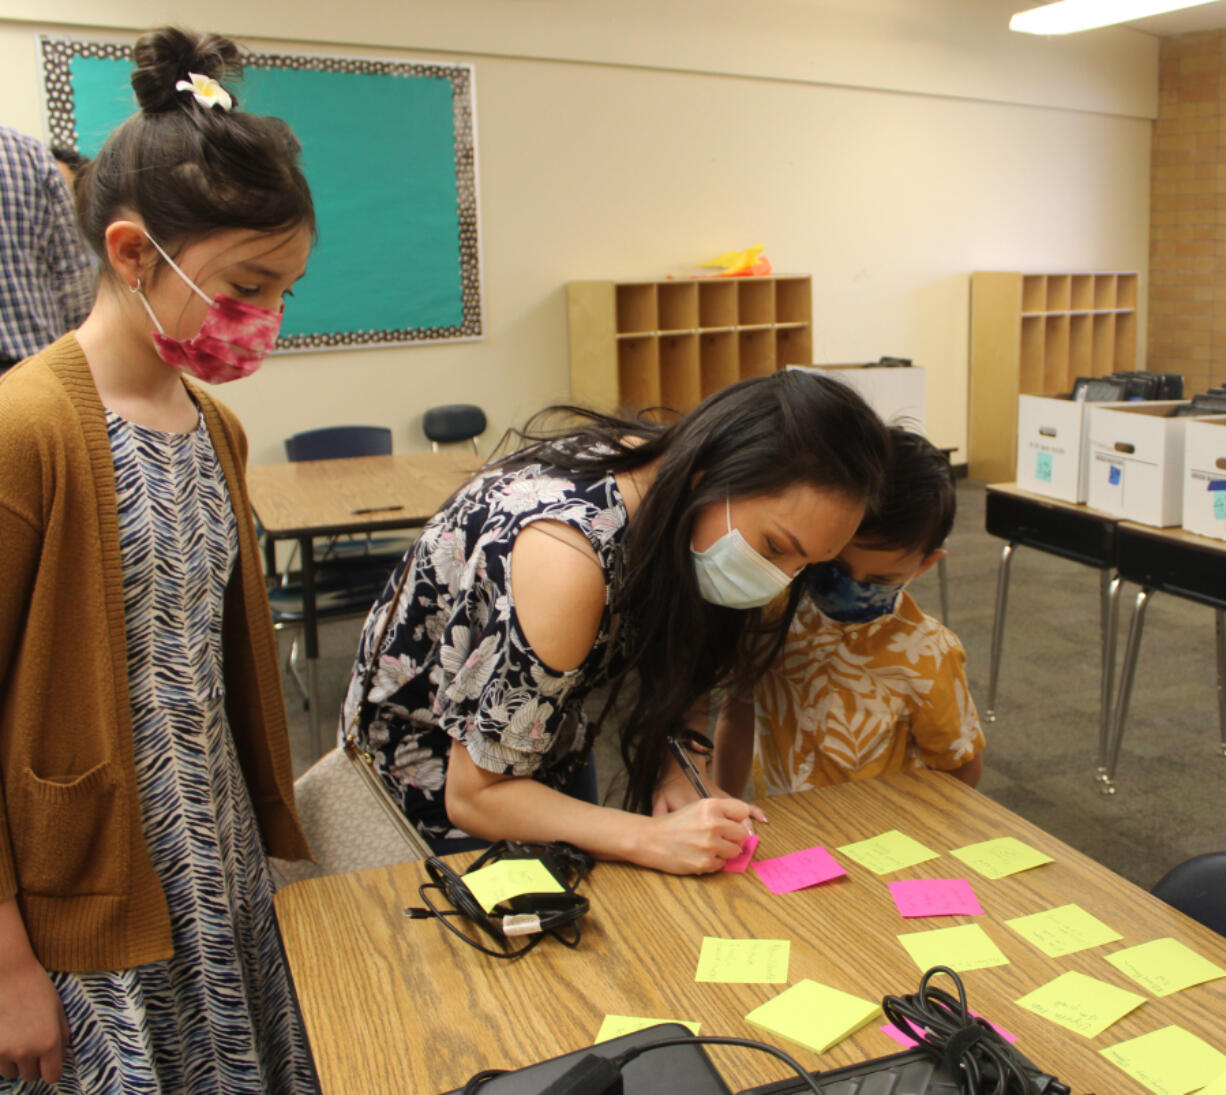 Fernanda Titcomb, center, attends a back-to-school event for Camas Connect Academy on Aug. 24 with her children, Anela, left, and Santiago. Titcomb said safety concerns related to the COVID-19 pandemic prompted her family to enroll in the district's remote school.